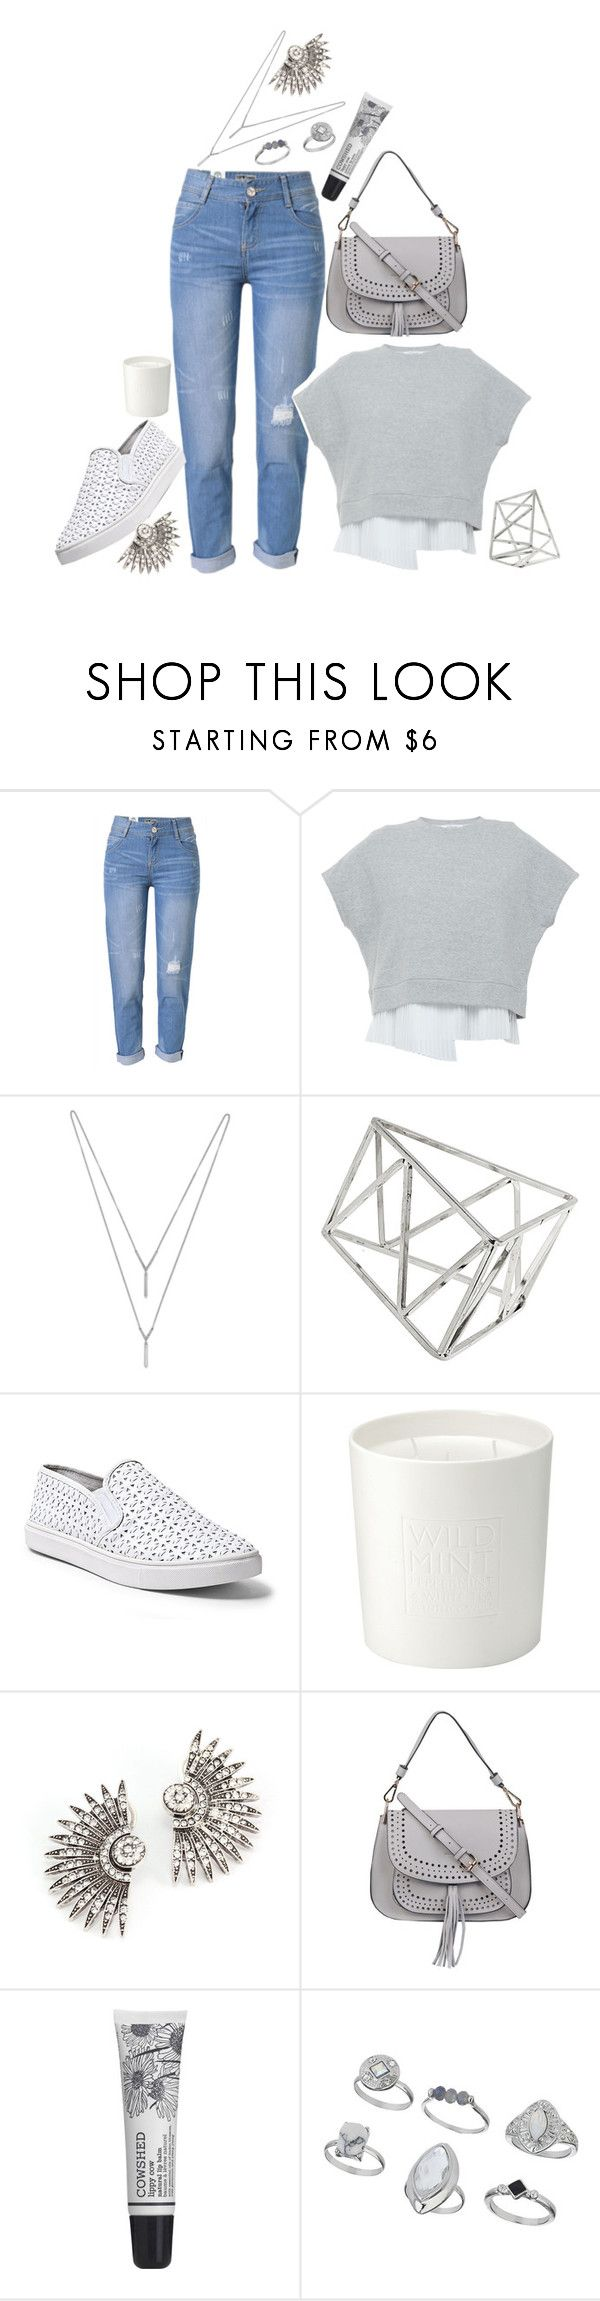 """""""Fantasy: Mariah Carey"""" by yeaya ❤ liked on Polyvore featuring WithChic, 10 Crosby Derek Lam, BCBGeneration, Topshop, Steve Madden, The White Company, Beacon, Cowshed and Miss Selfridge"""